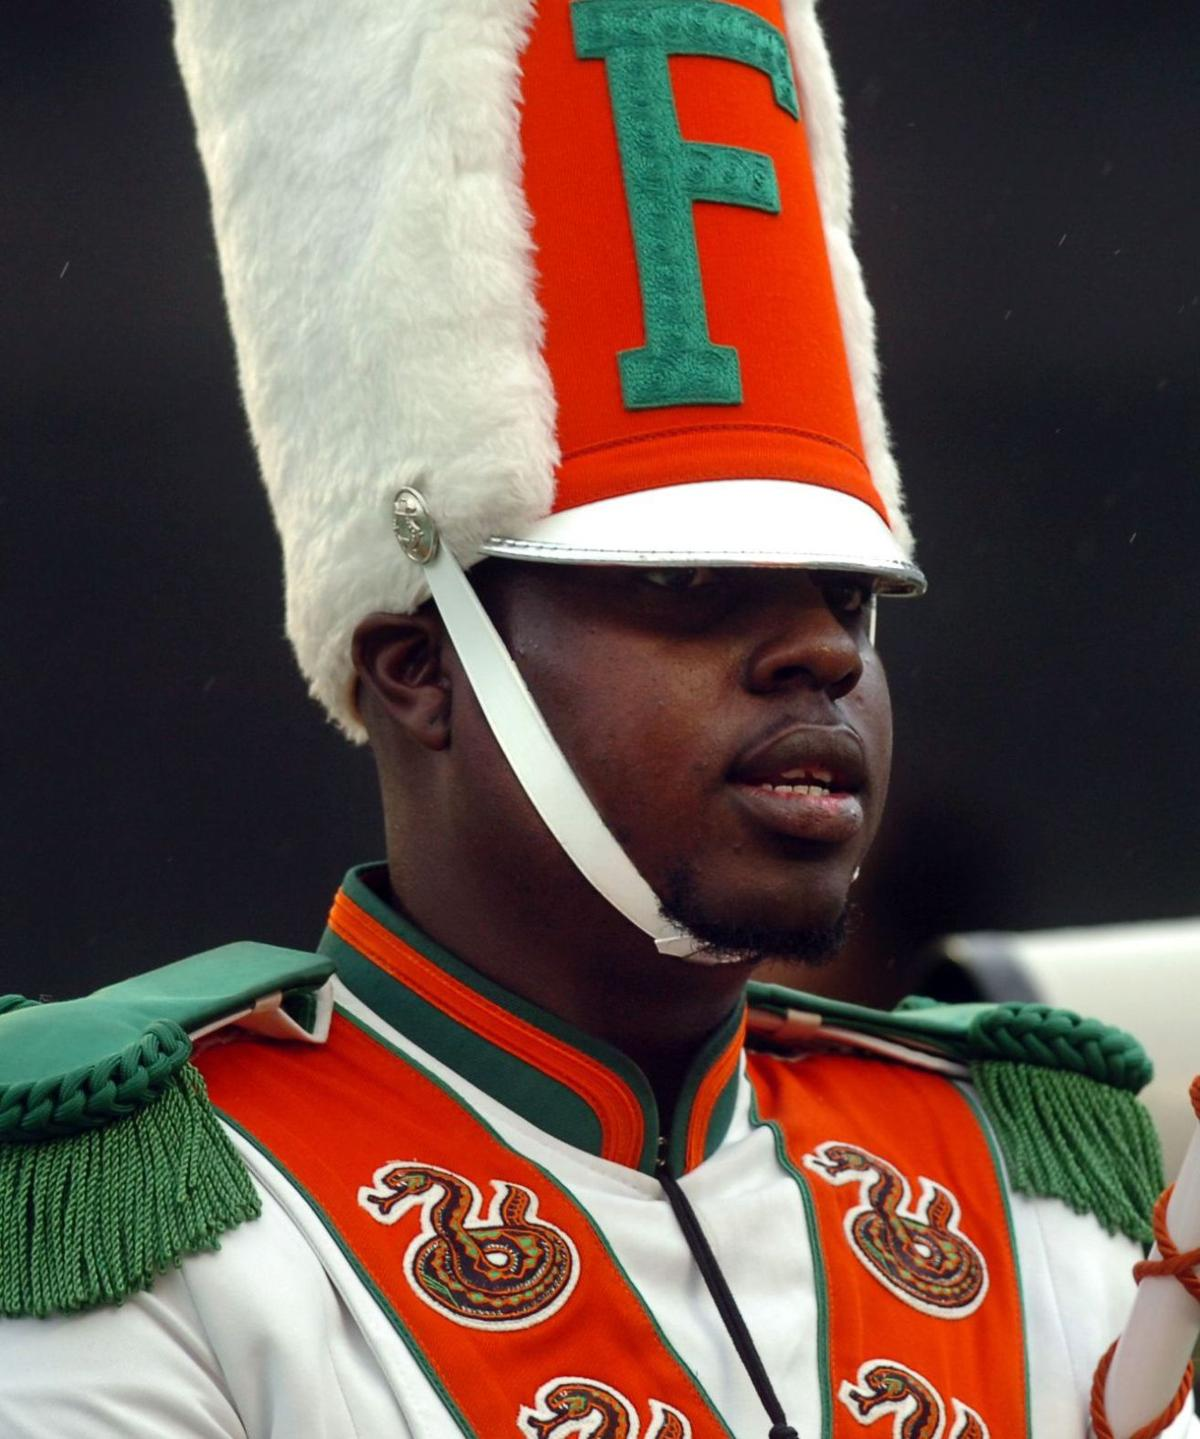 13 charged in hazing death of Fla. A&M drum major